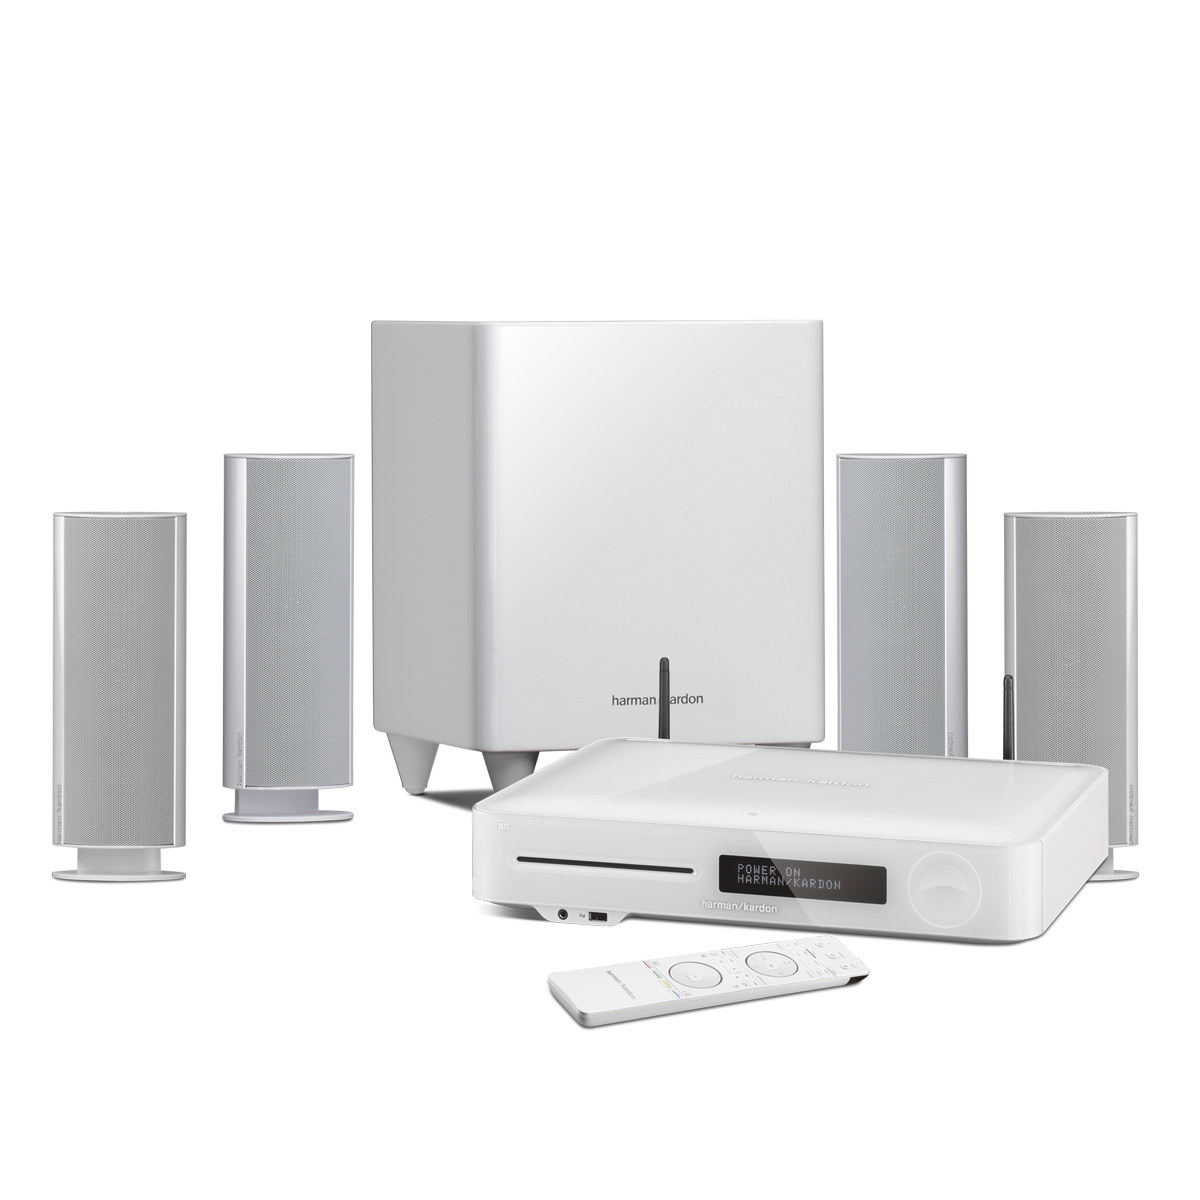 Harman kardon bds 780 blanc bds 780 white achat vente ensemble home cin - Home cinema 2 1 blanc ...